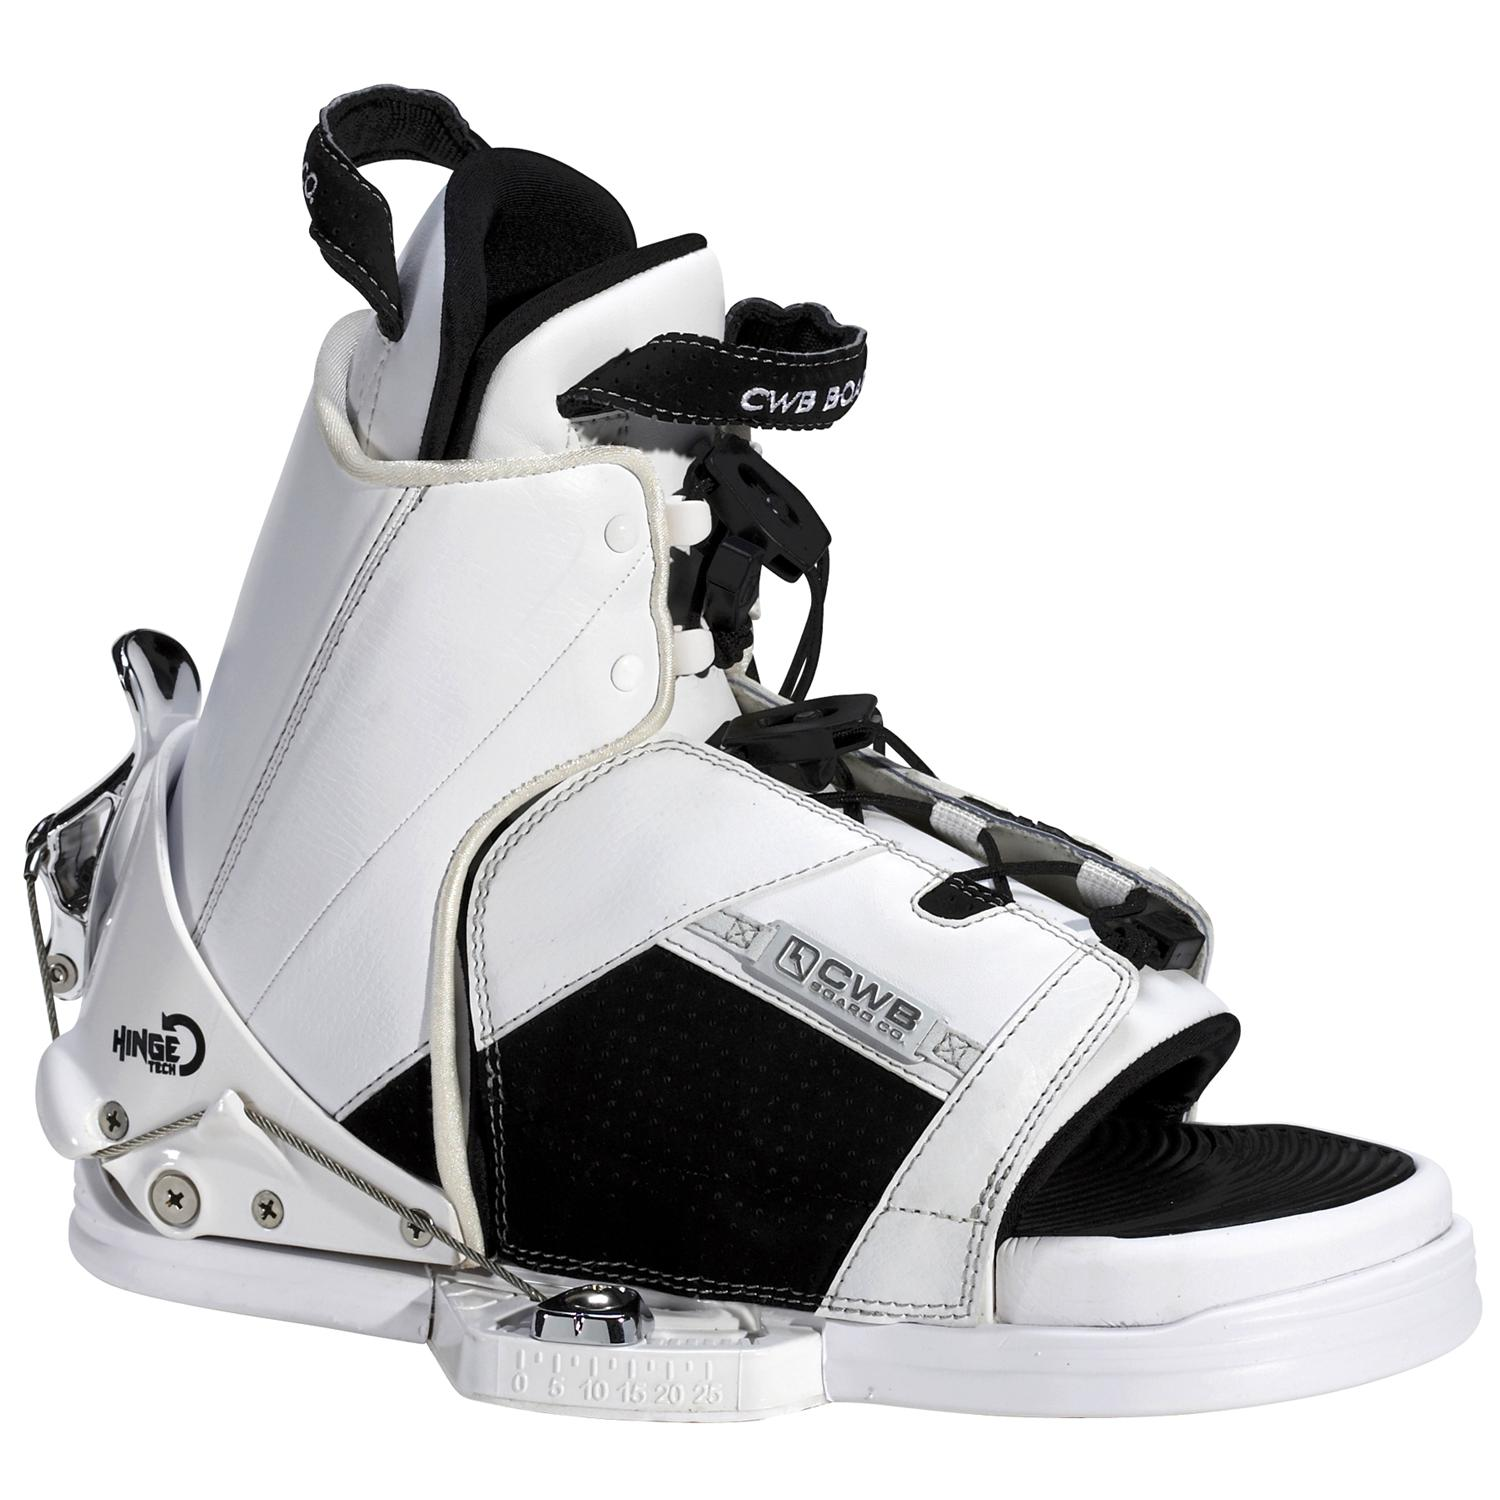 CWB Vapor Wakeboard Boots 2009